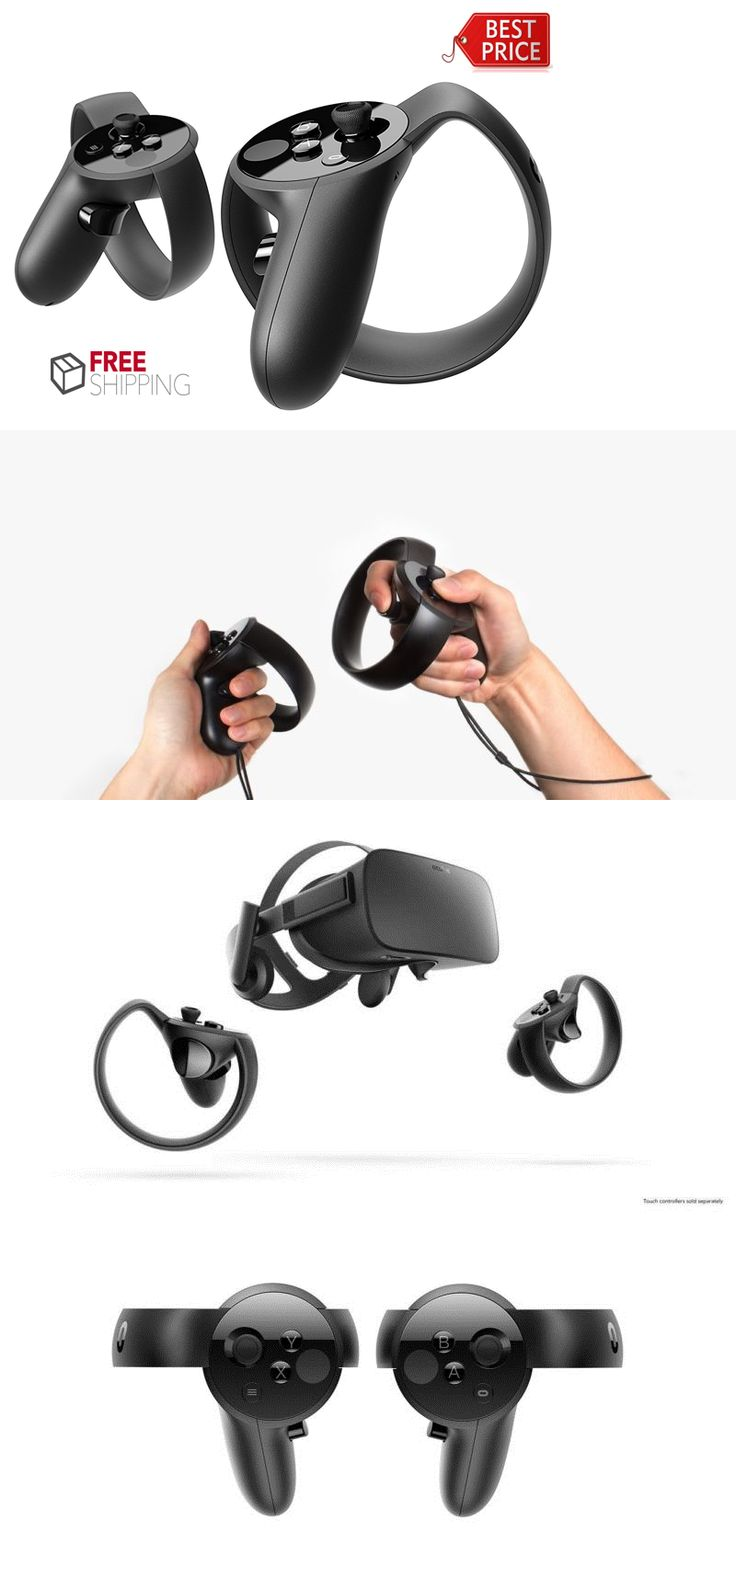 Controllers and Motion Sensors: Black Oculus Touch Controllers For Oculus Rift Rift Vr Virtual Reality New -> BUY IT NOW ONLY: $130.54 on eBay!